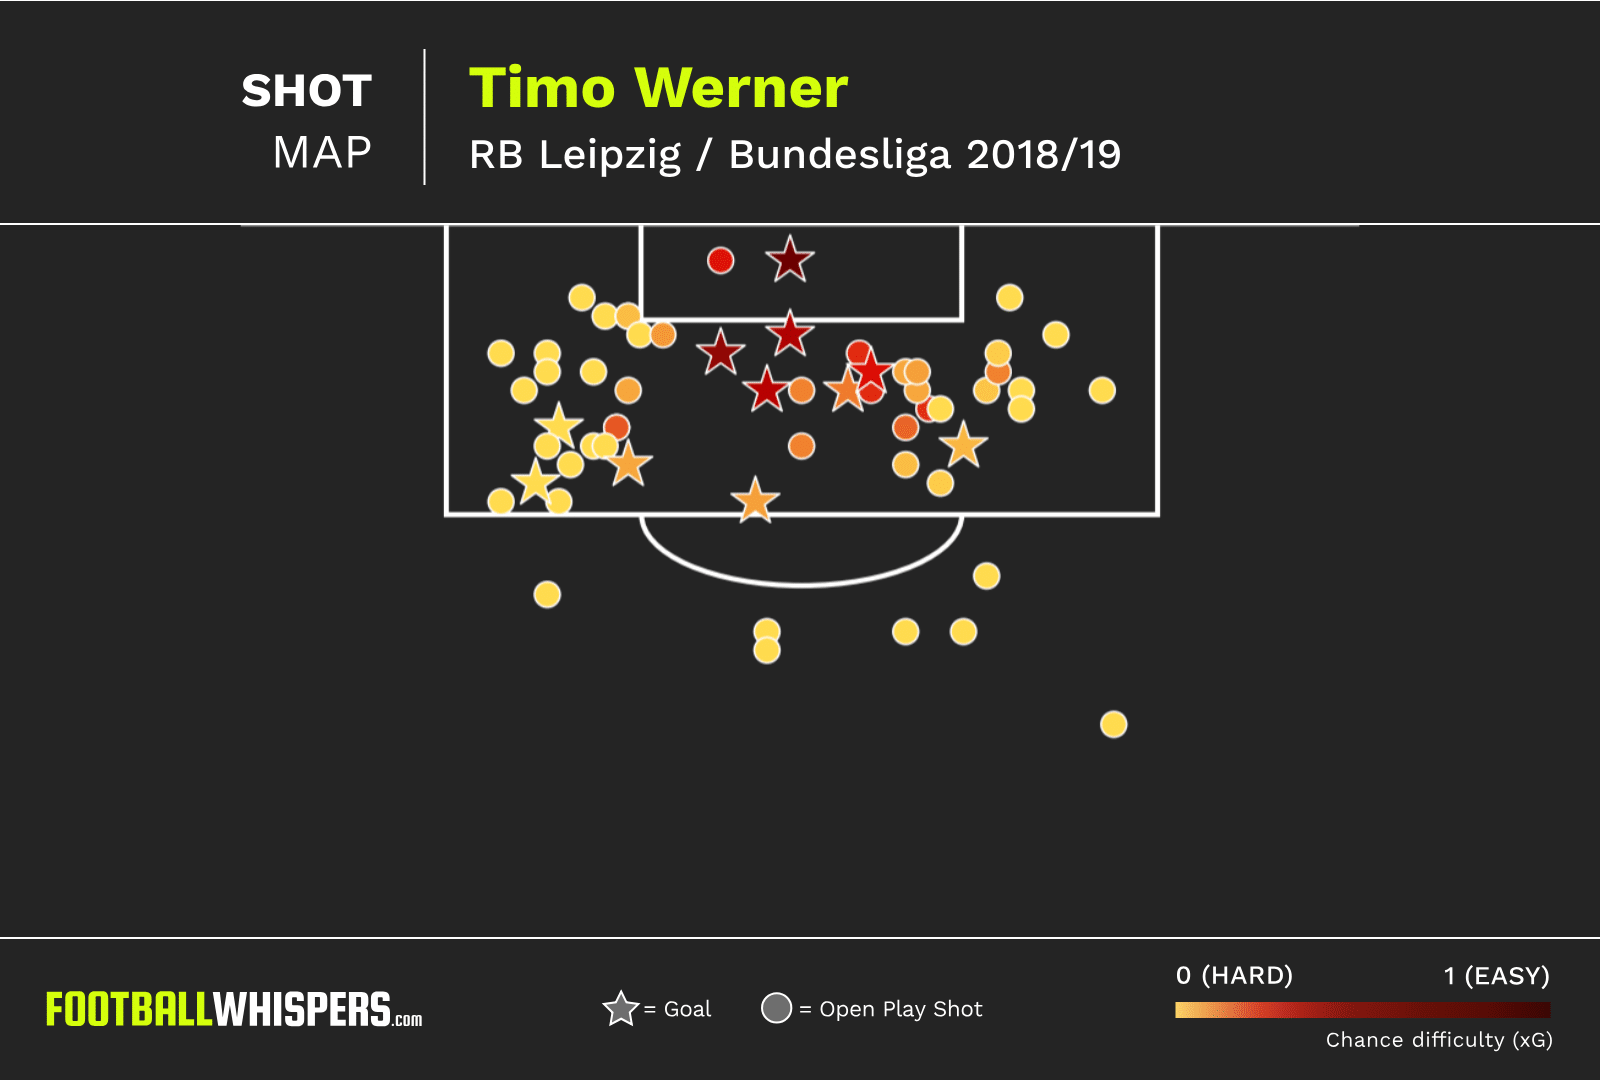 Timo Werner - The perfect forward for Liverpool